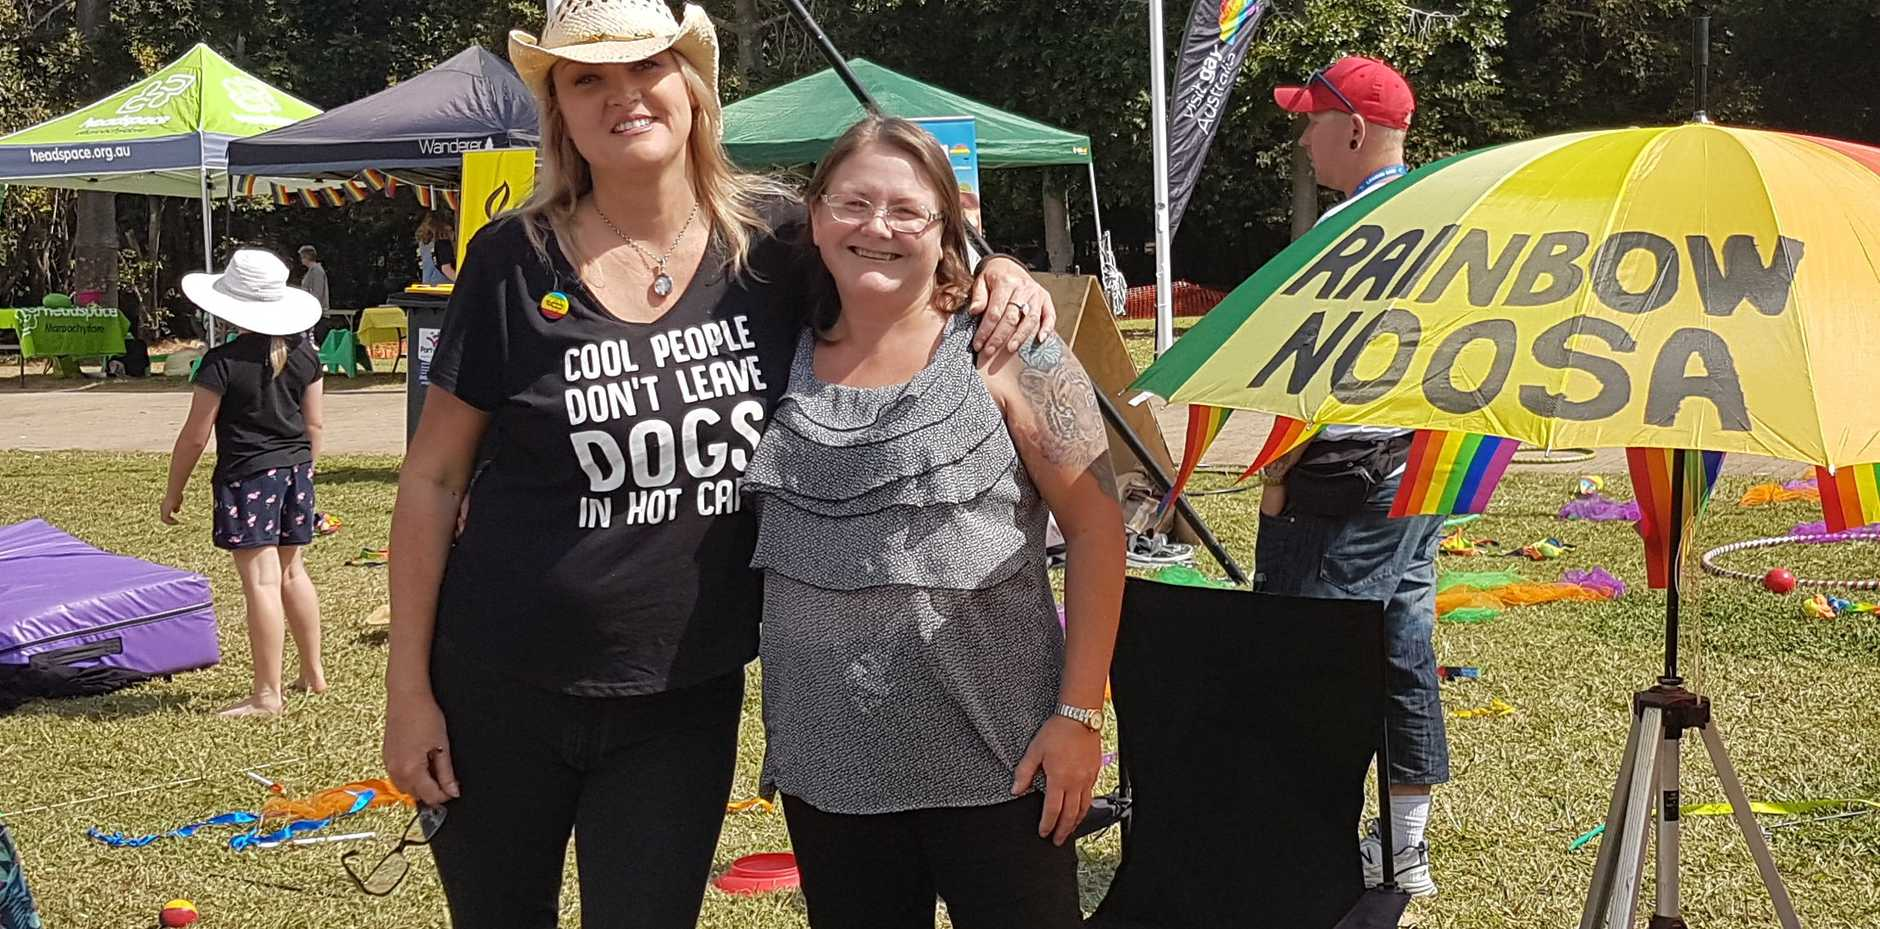 PROUD: Rainbow Noosa members, Courtney Noble and Nicole Dillon at the 2019 Sunshine Coast Pride Festival in Nambour.